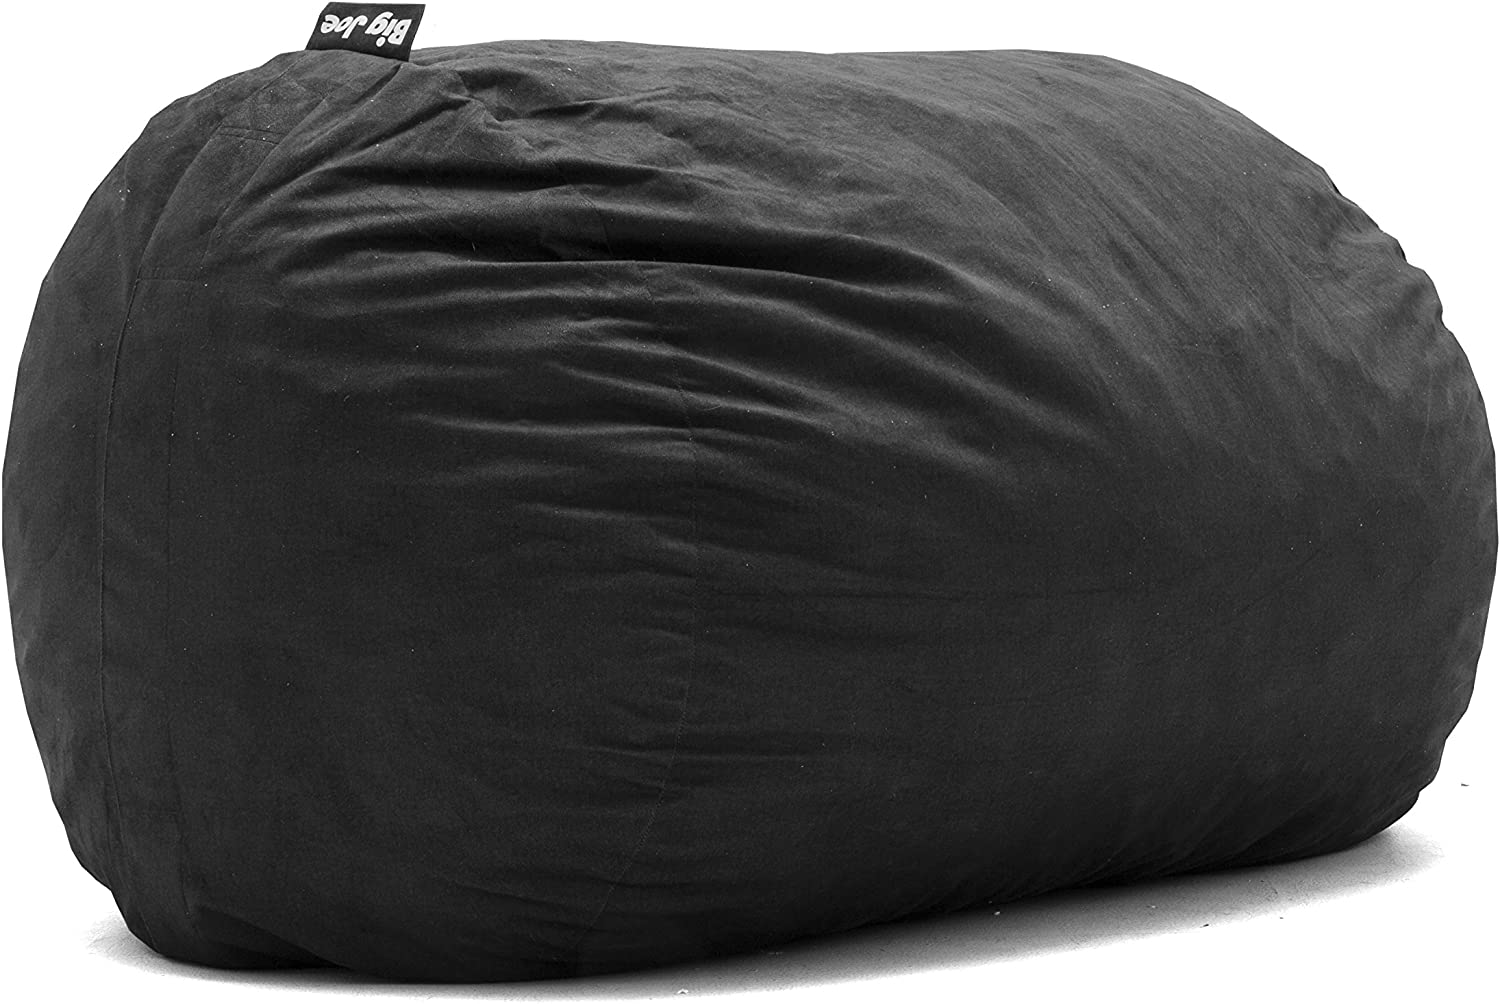 Big Joe Black XL Fuf Lenox Foam Filled Bean Bag Chair with Liner and Removable Cover, Extra Large with Remvovable